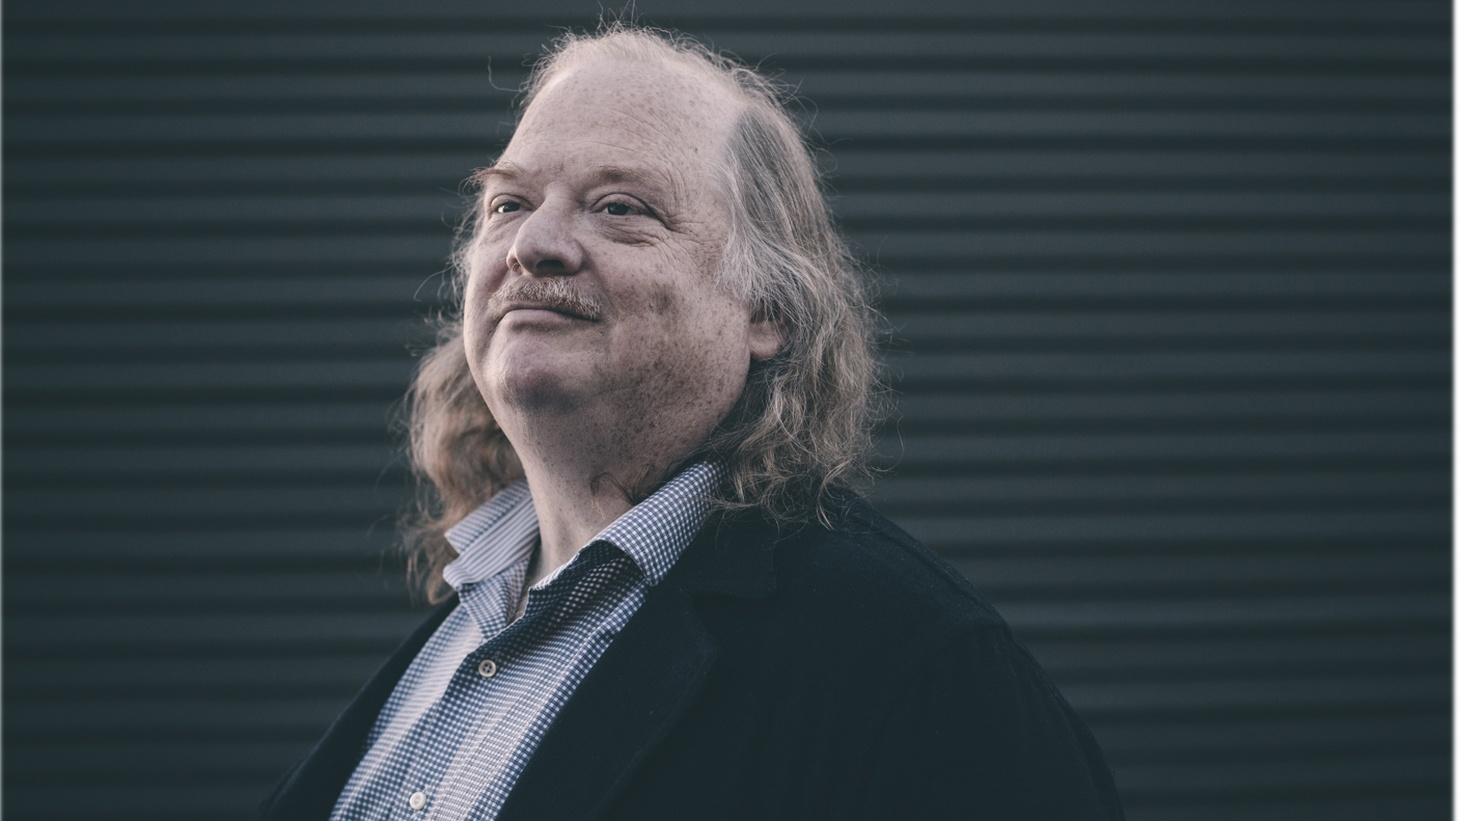 As he prepares for his big screen debut in City of Gold, Pulitzer Prize winning food writer Jonathan Gold discusses the pros and cons of anonymity. He wrote about the issue in a cover story for the Los Angeles Times.